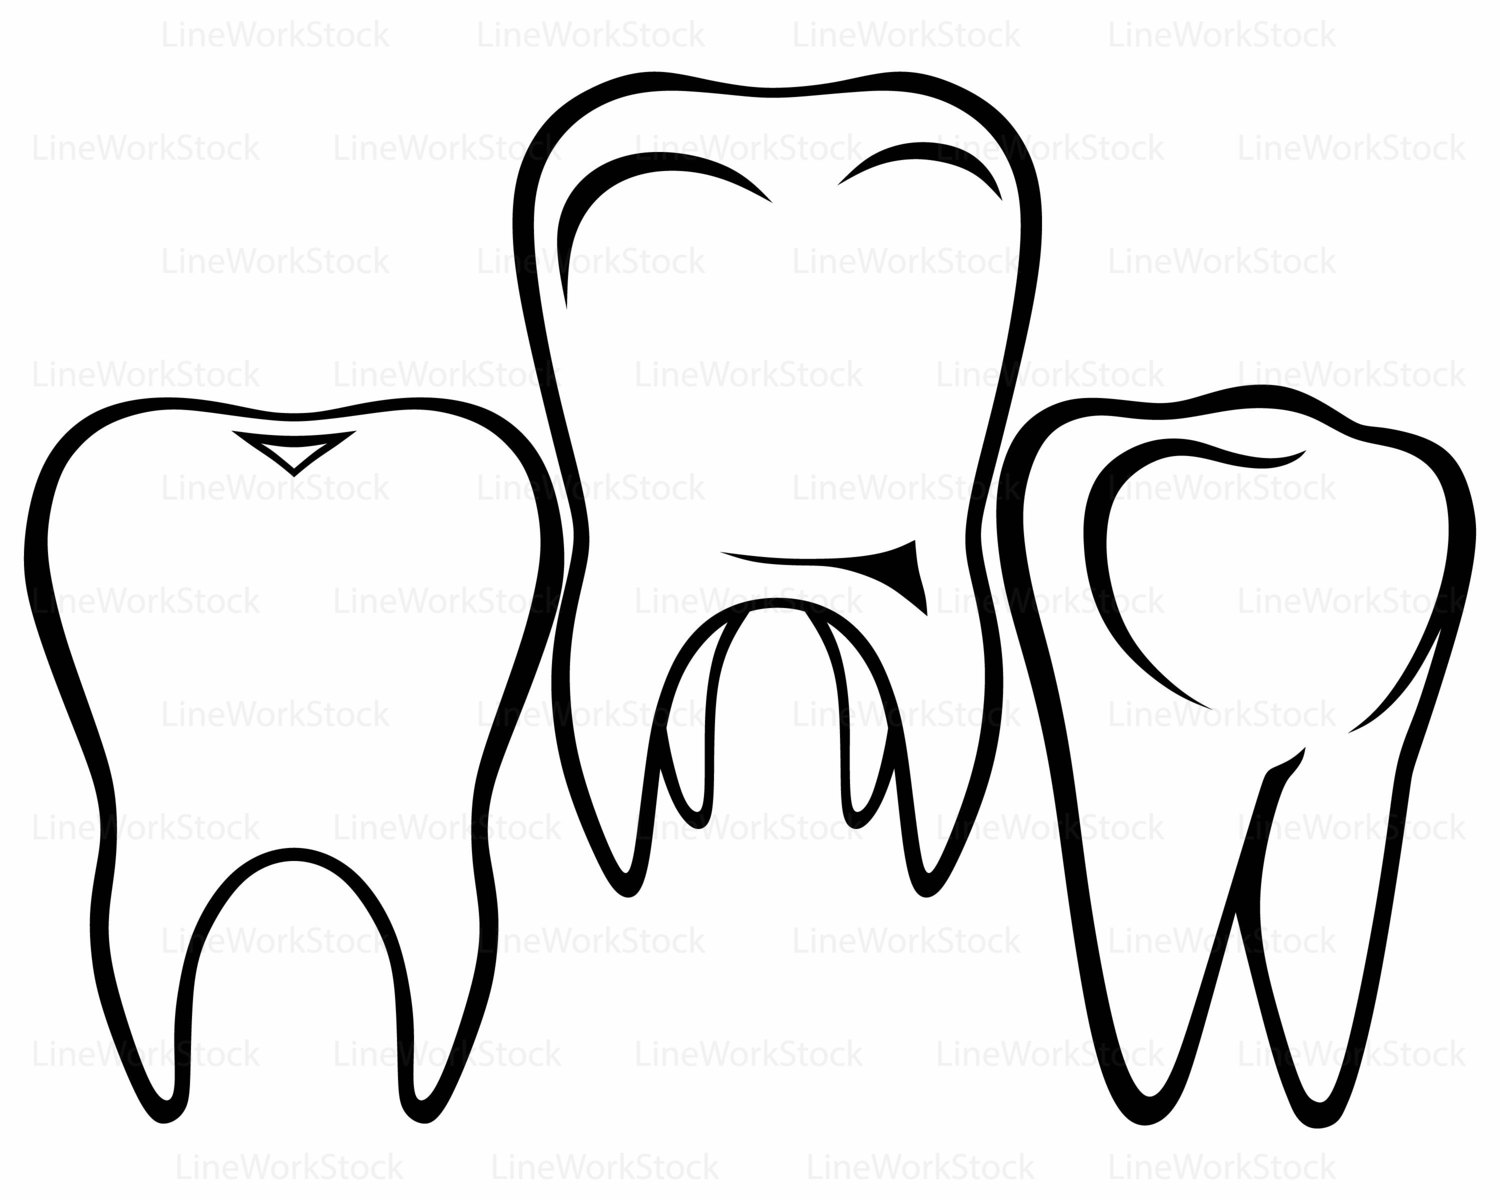 The Best Free Molar Drawing Images  Download From 56 Free Drawings Of Molar At Getdrawings